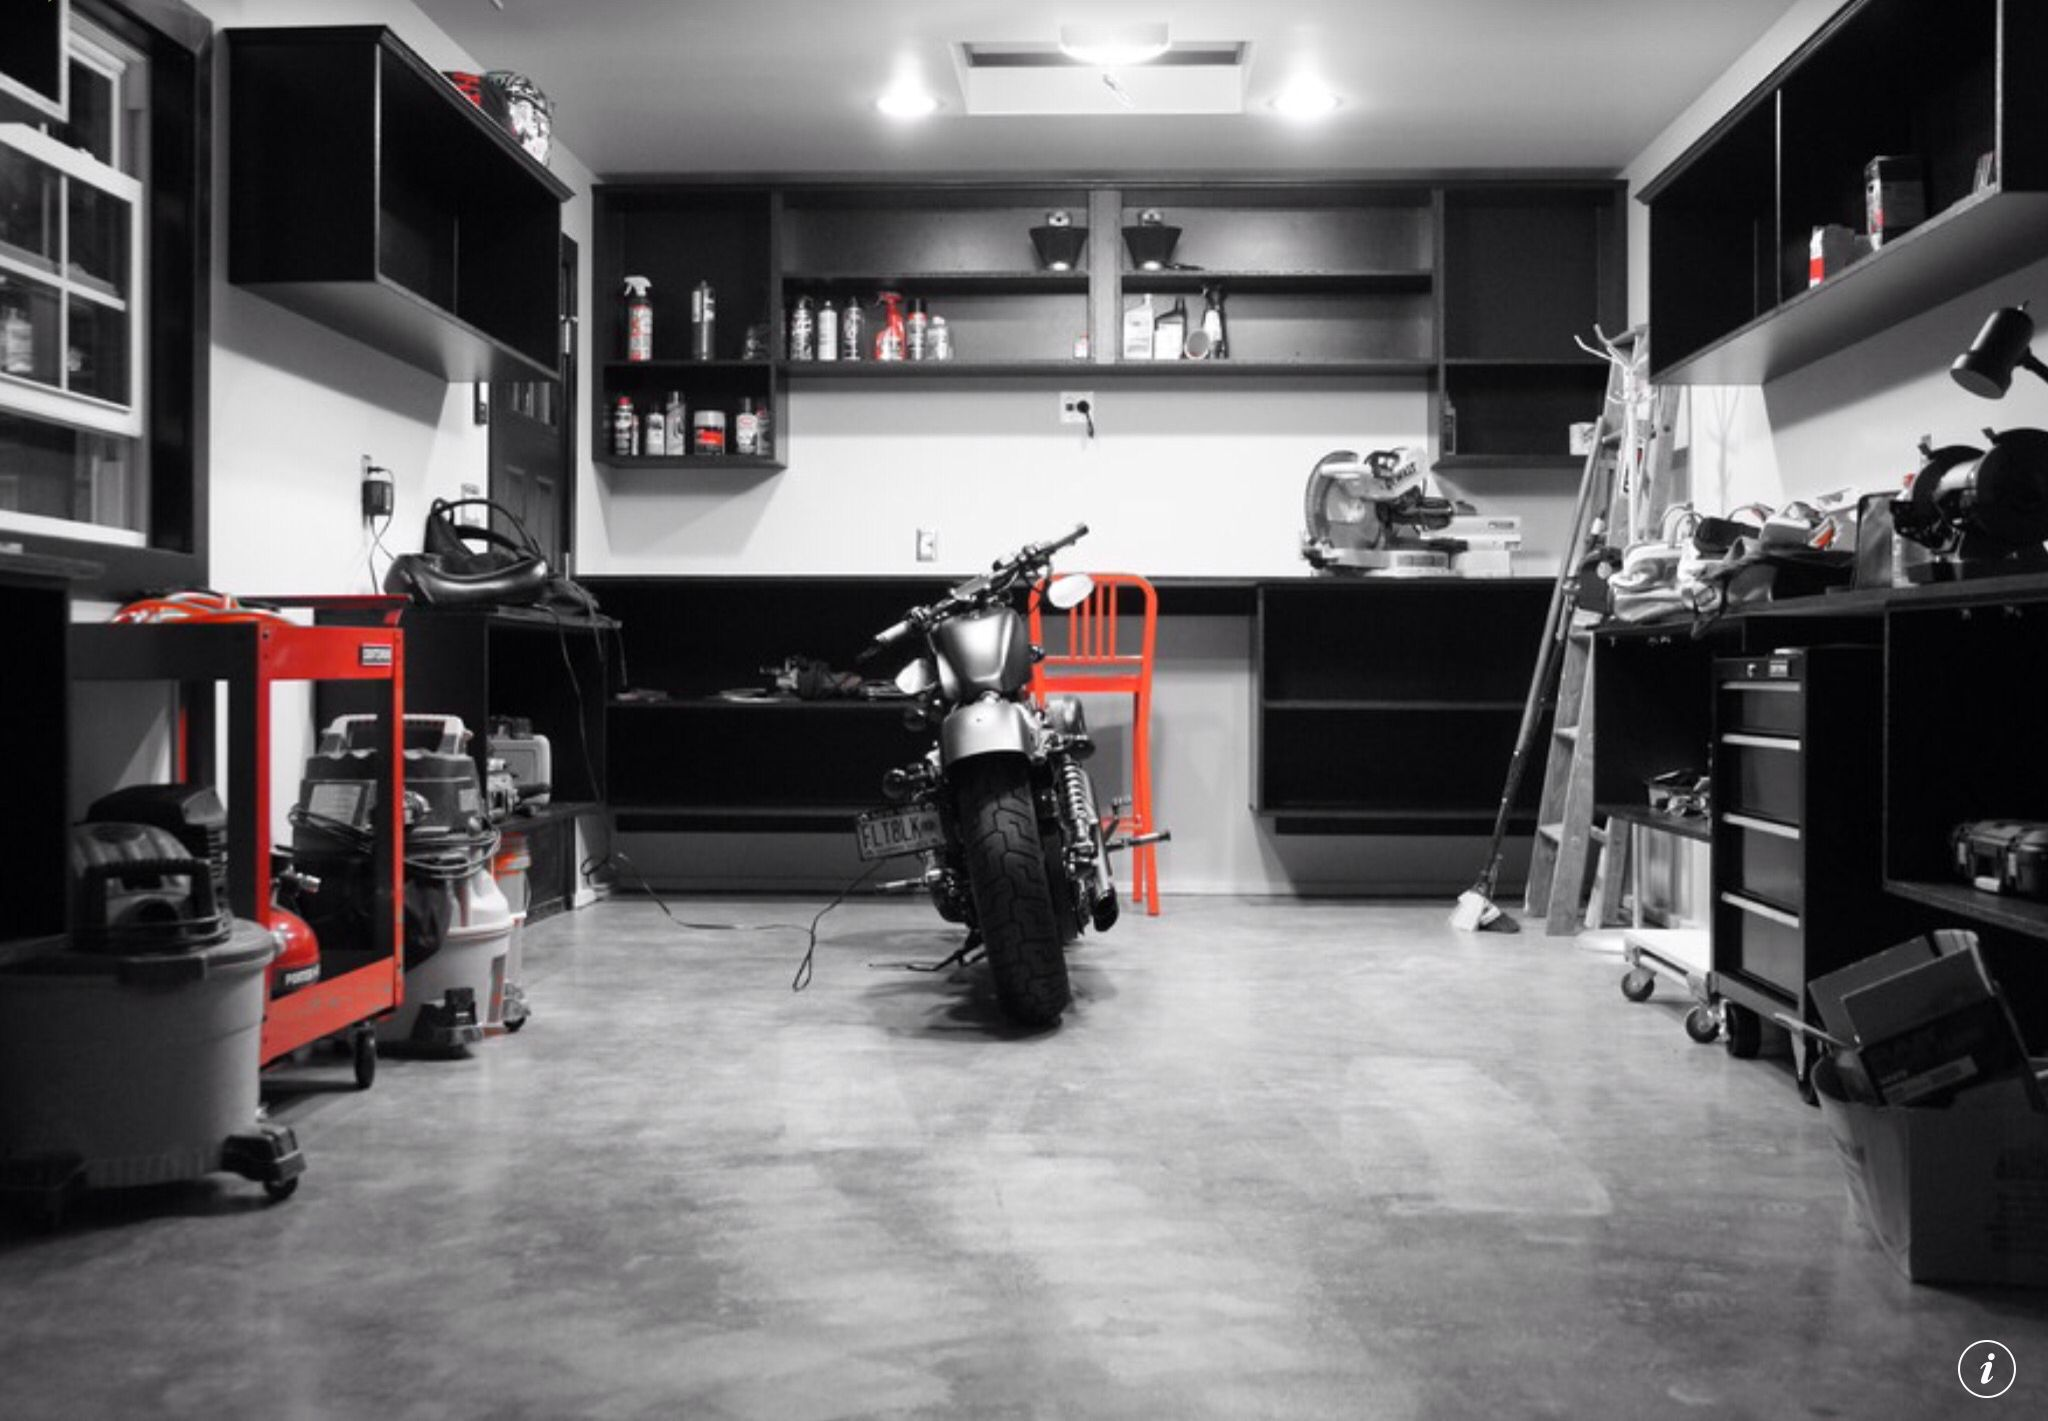 Garage Work Area Garage Interior Garage Design Motorcycle Garage